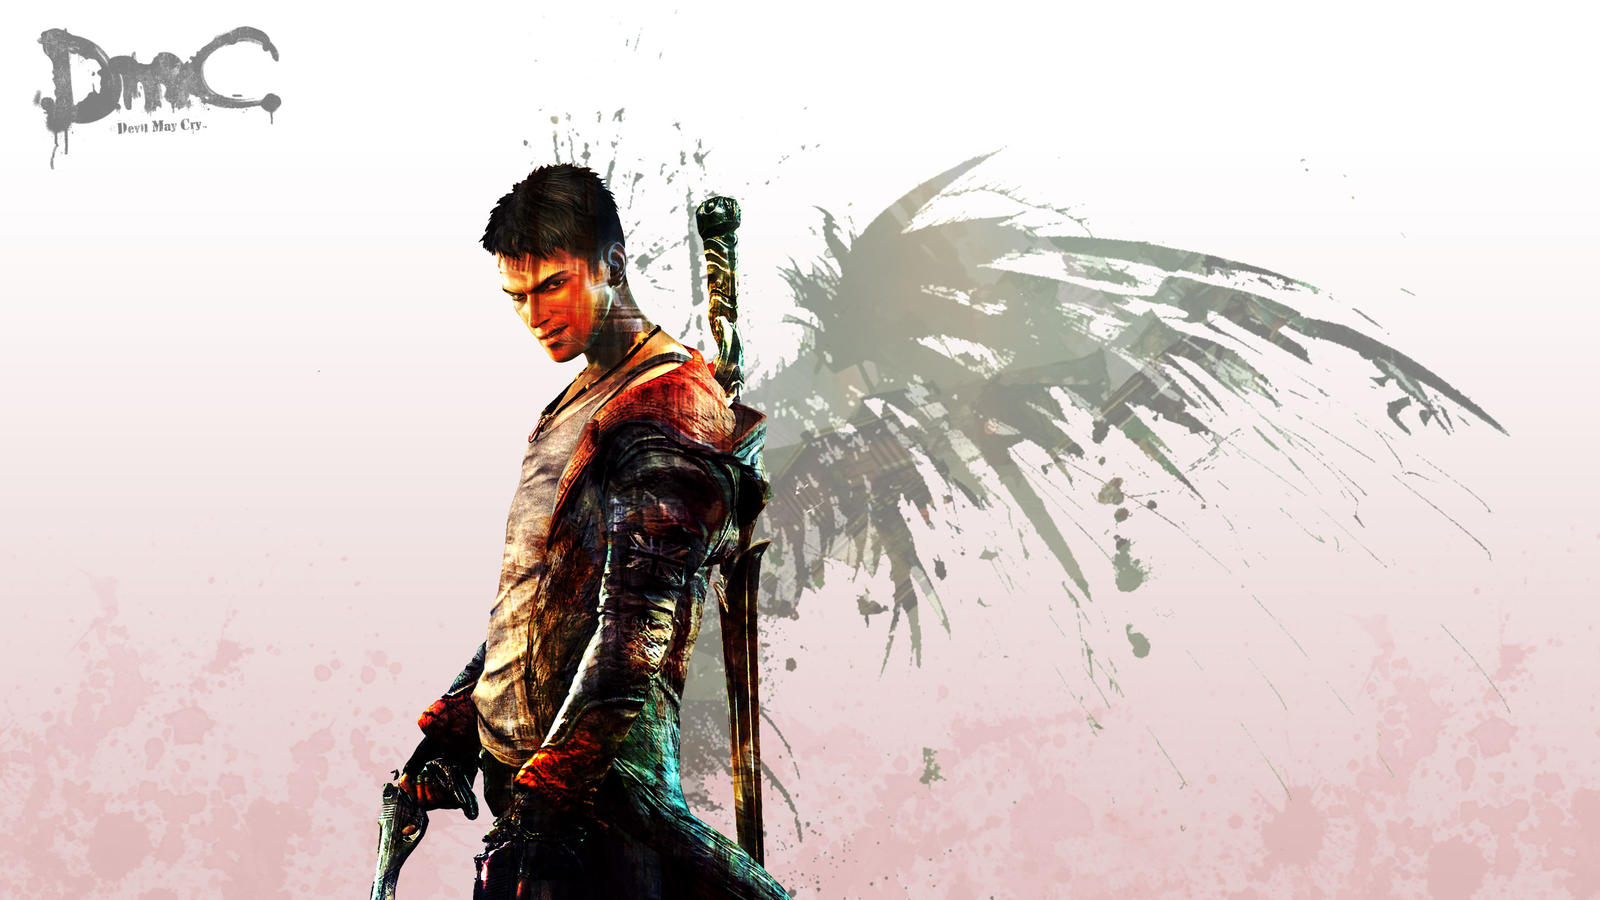 dante wallpaper download